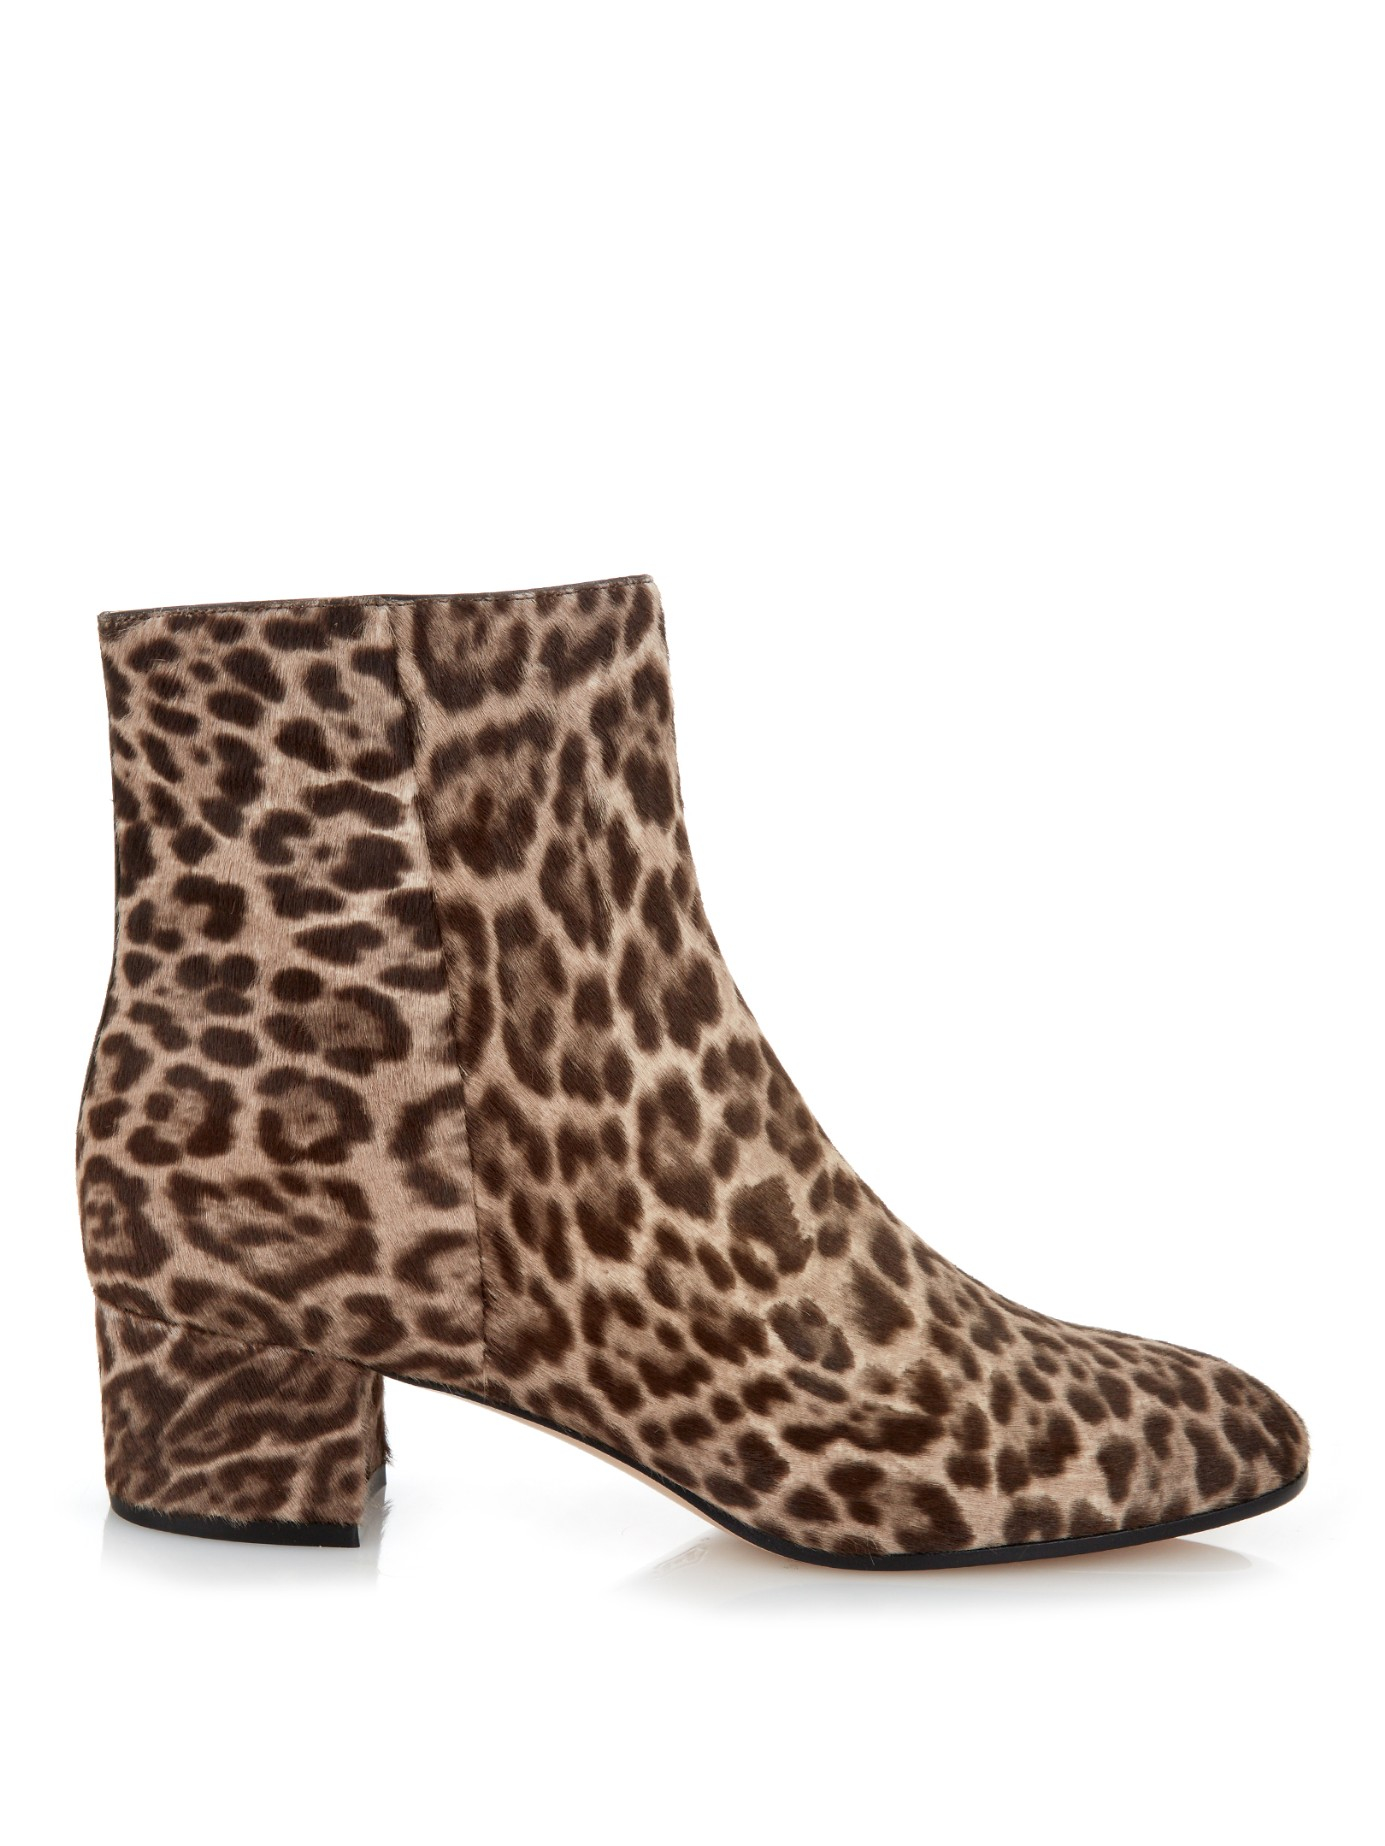 gianvito brown leopard print calf hair ankle boots